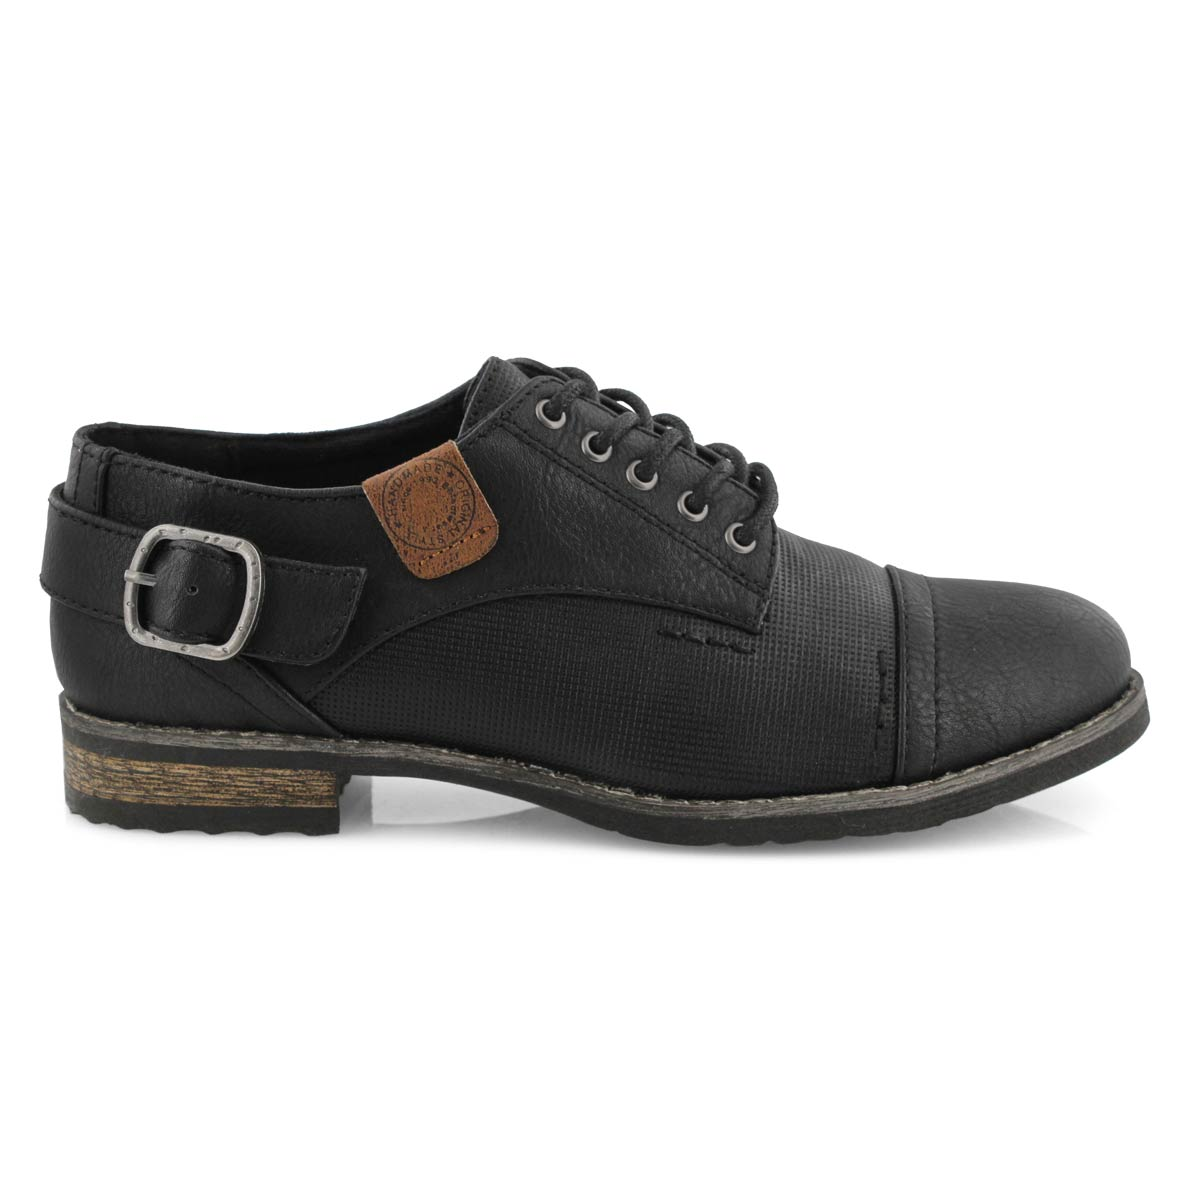 Lds Talisa 2  black casual oxford shoe